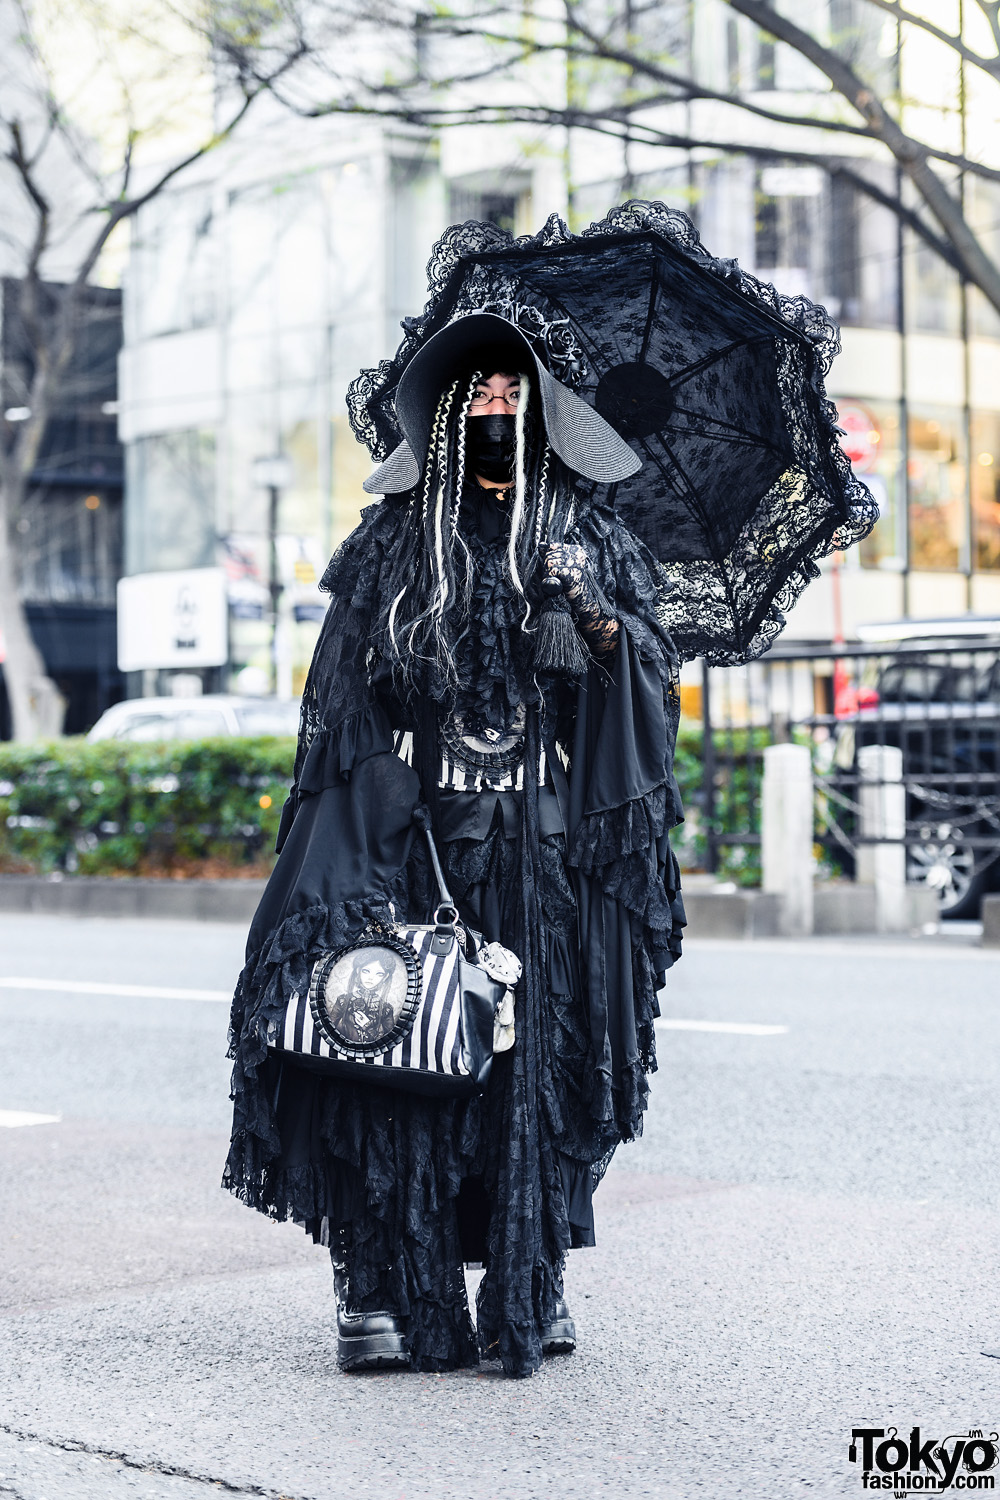 Tokyo Gothic Style in Harajuku w/ Wide Brim Hat, Lace Parasol, Gothic (Rose) Tiered Dress, ReStyle Corset & Bag, Killstar, Noble Noire & Yosuke Boots